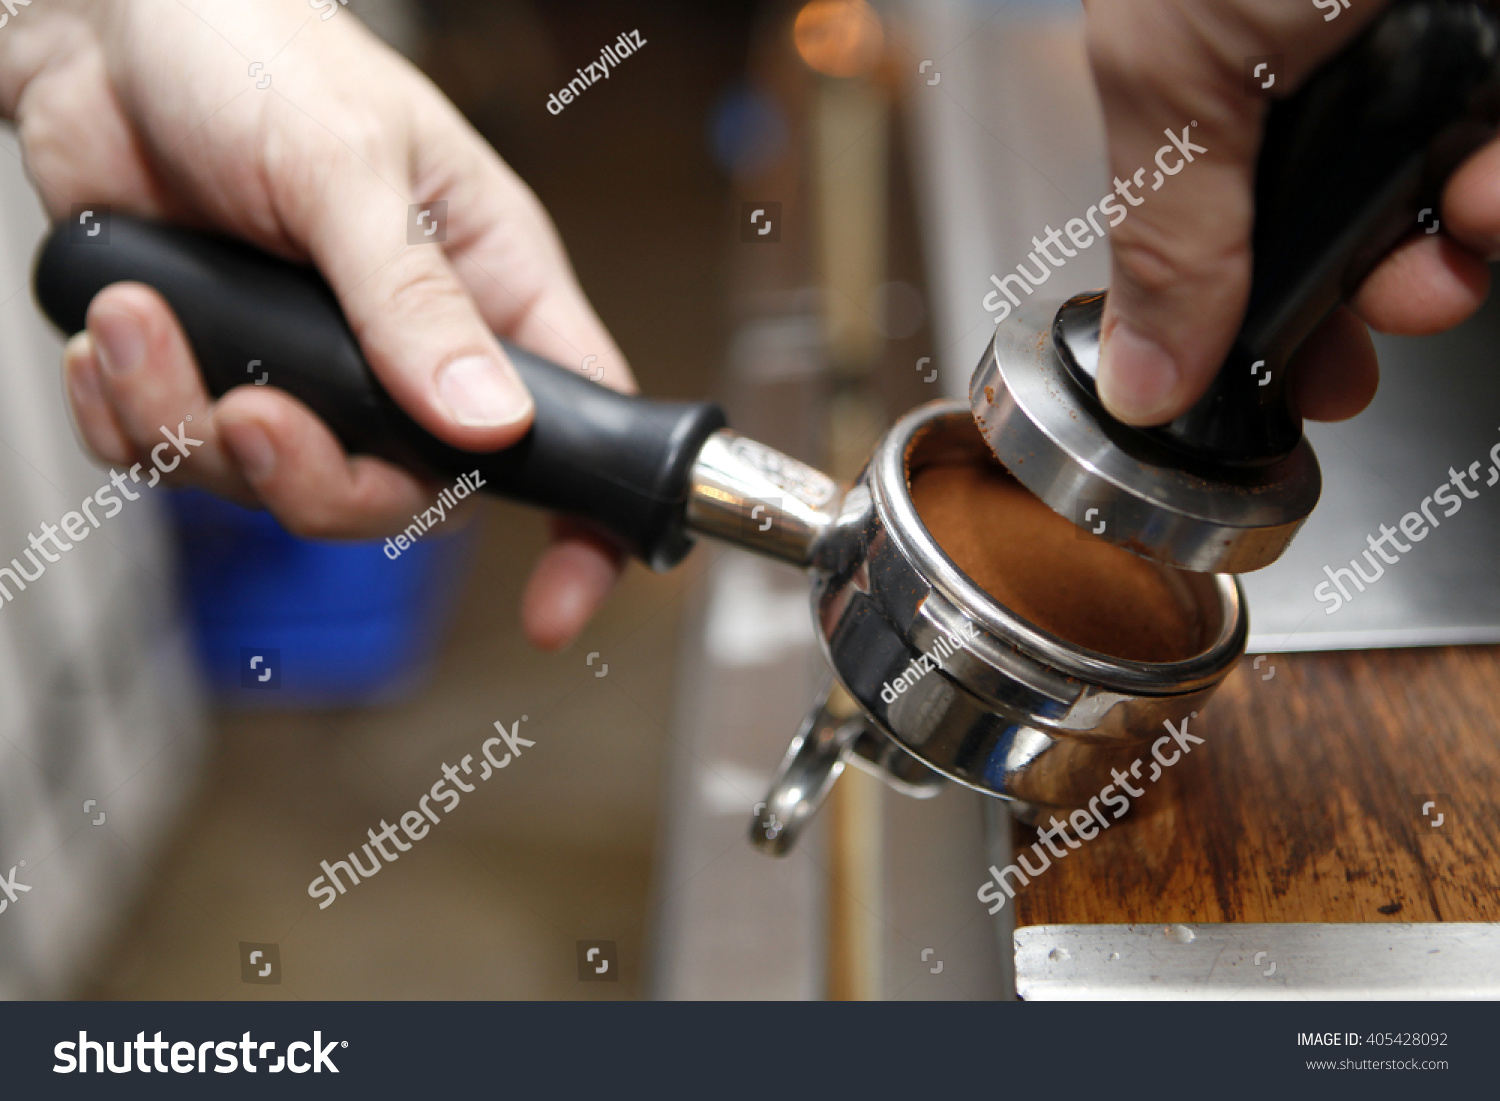 coffee temping stock photo shutterstock save to a lightbox